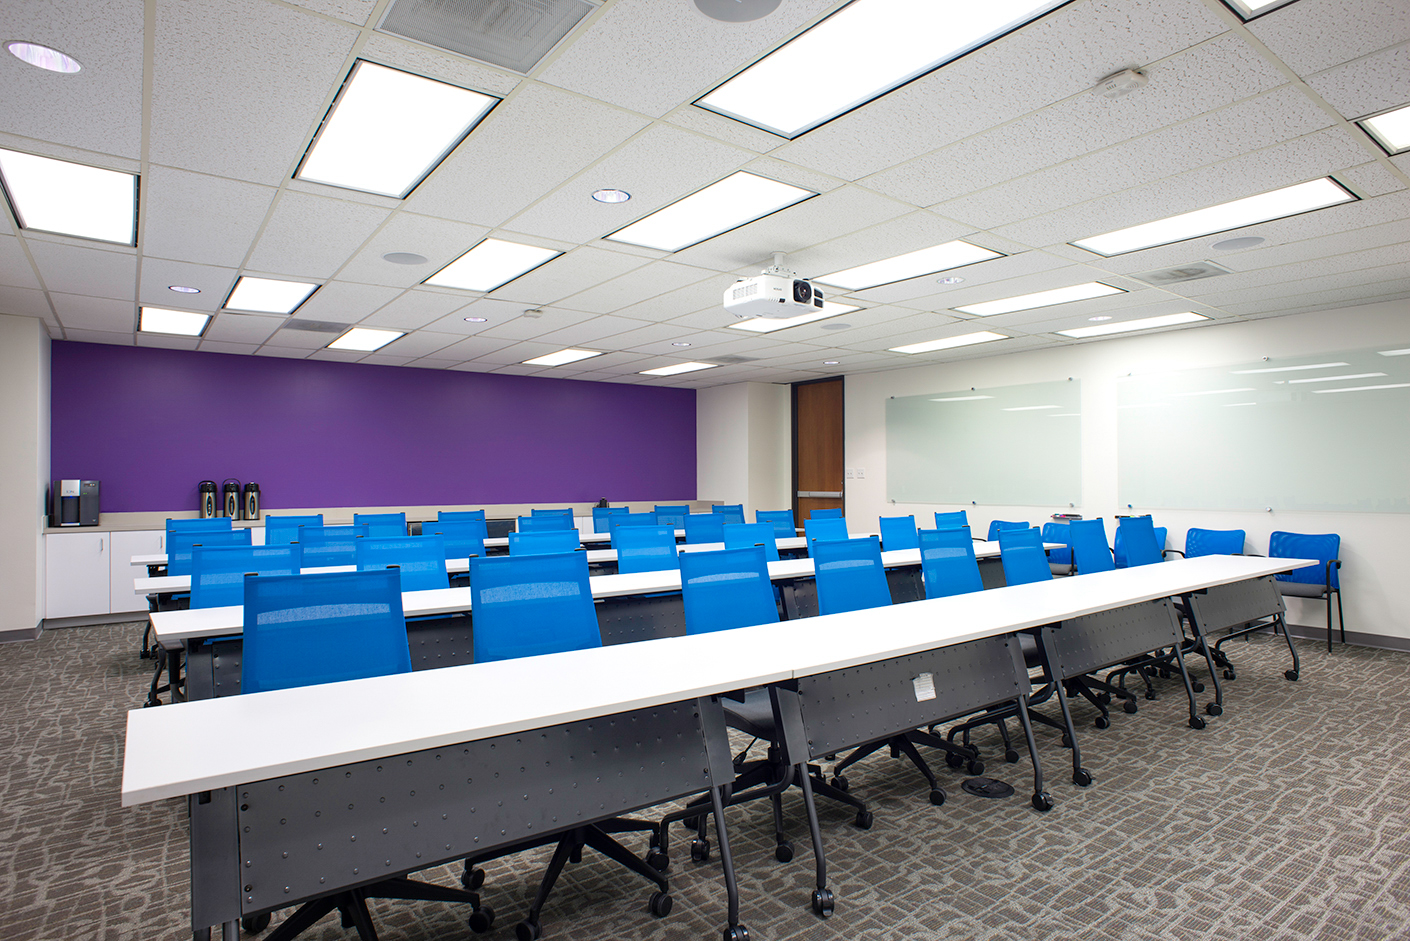 Commercial-Office-Building-Training-Room-Interior-Photography